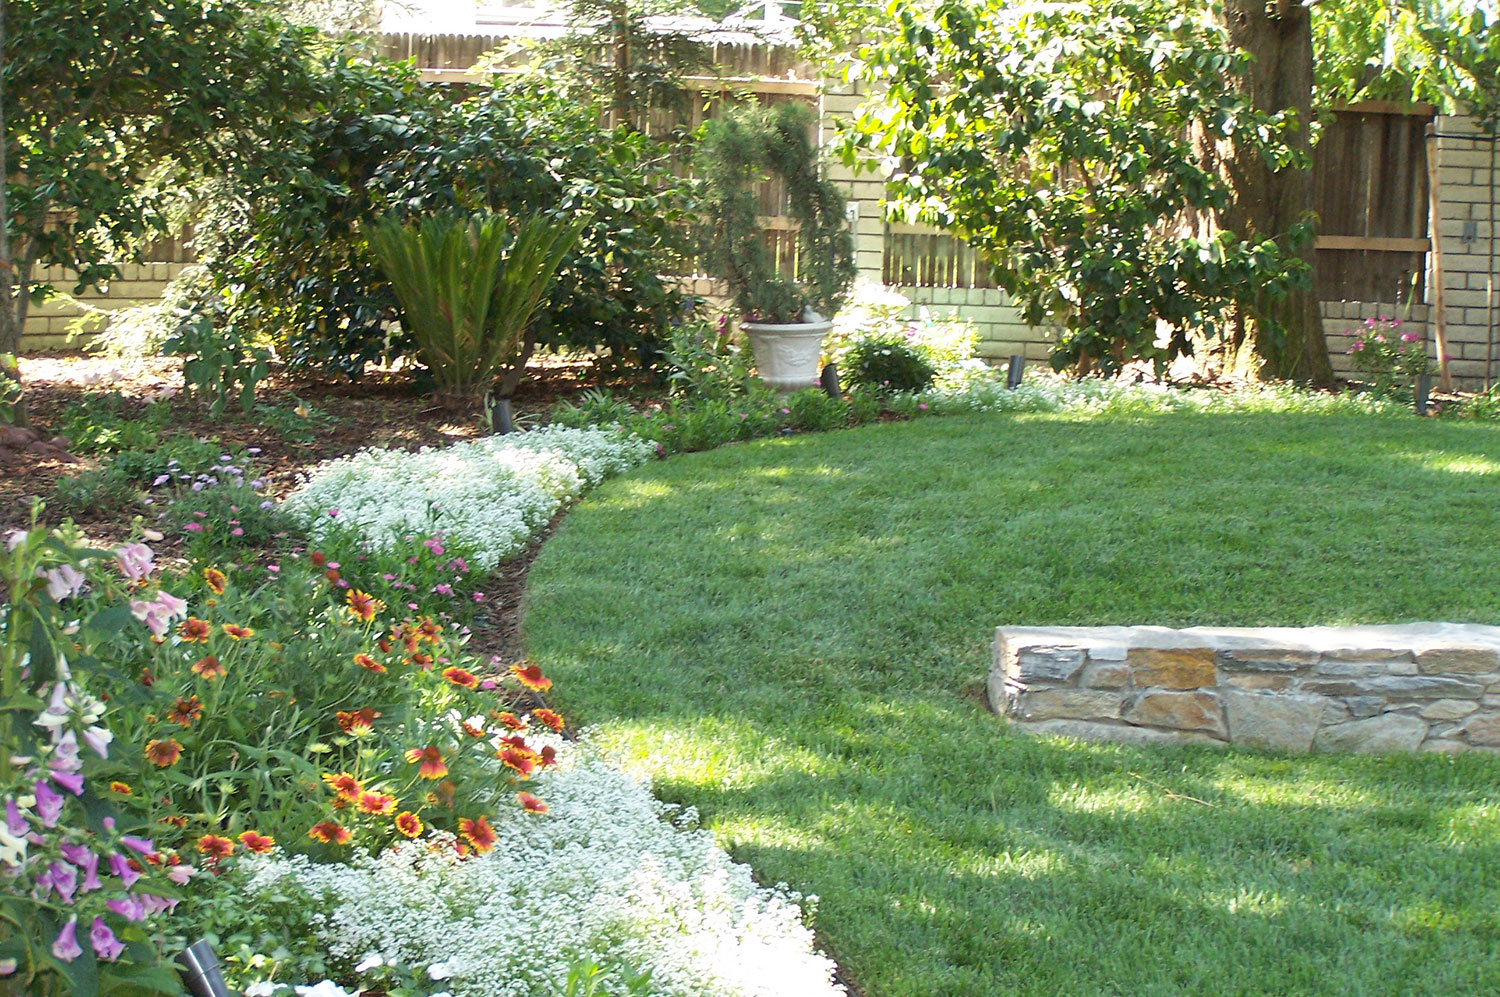 Flower Beds and Lawn